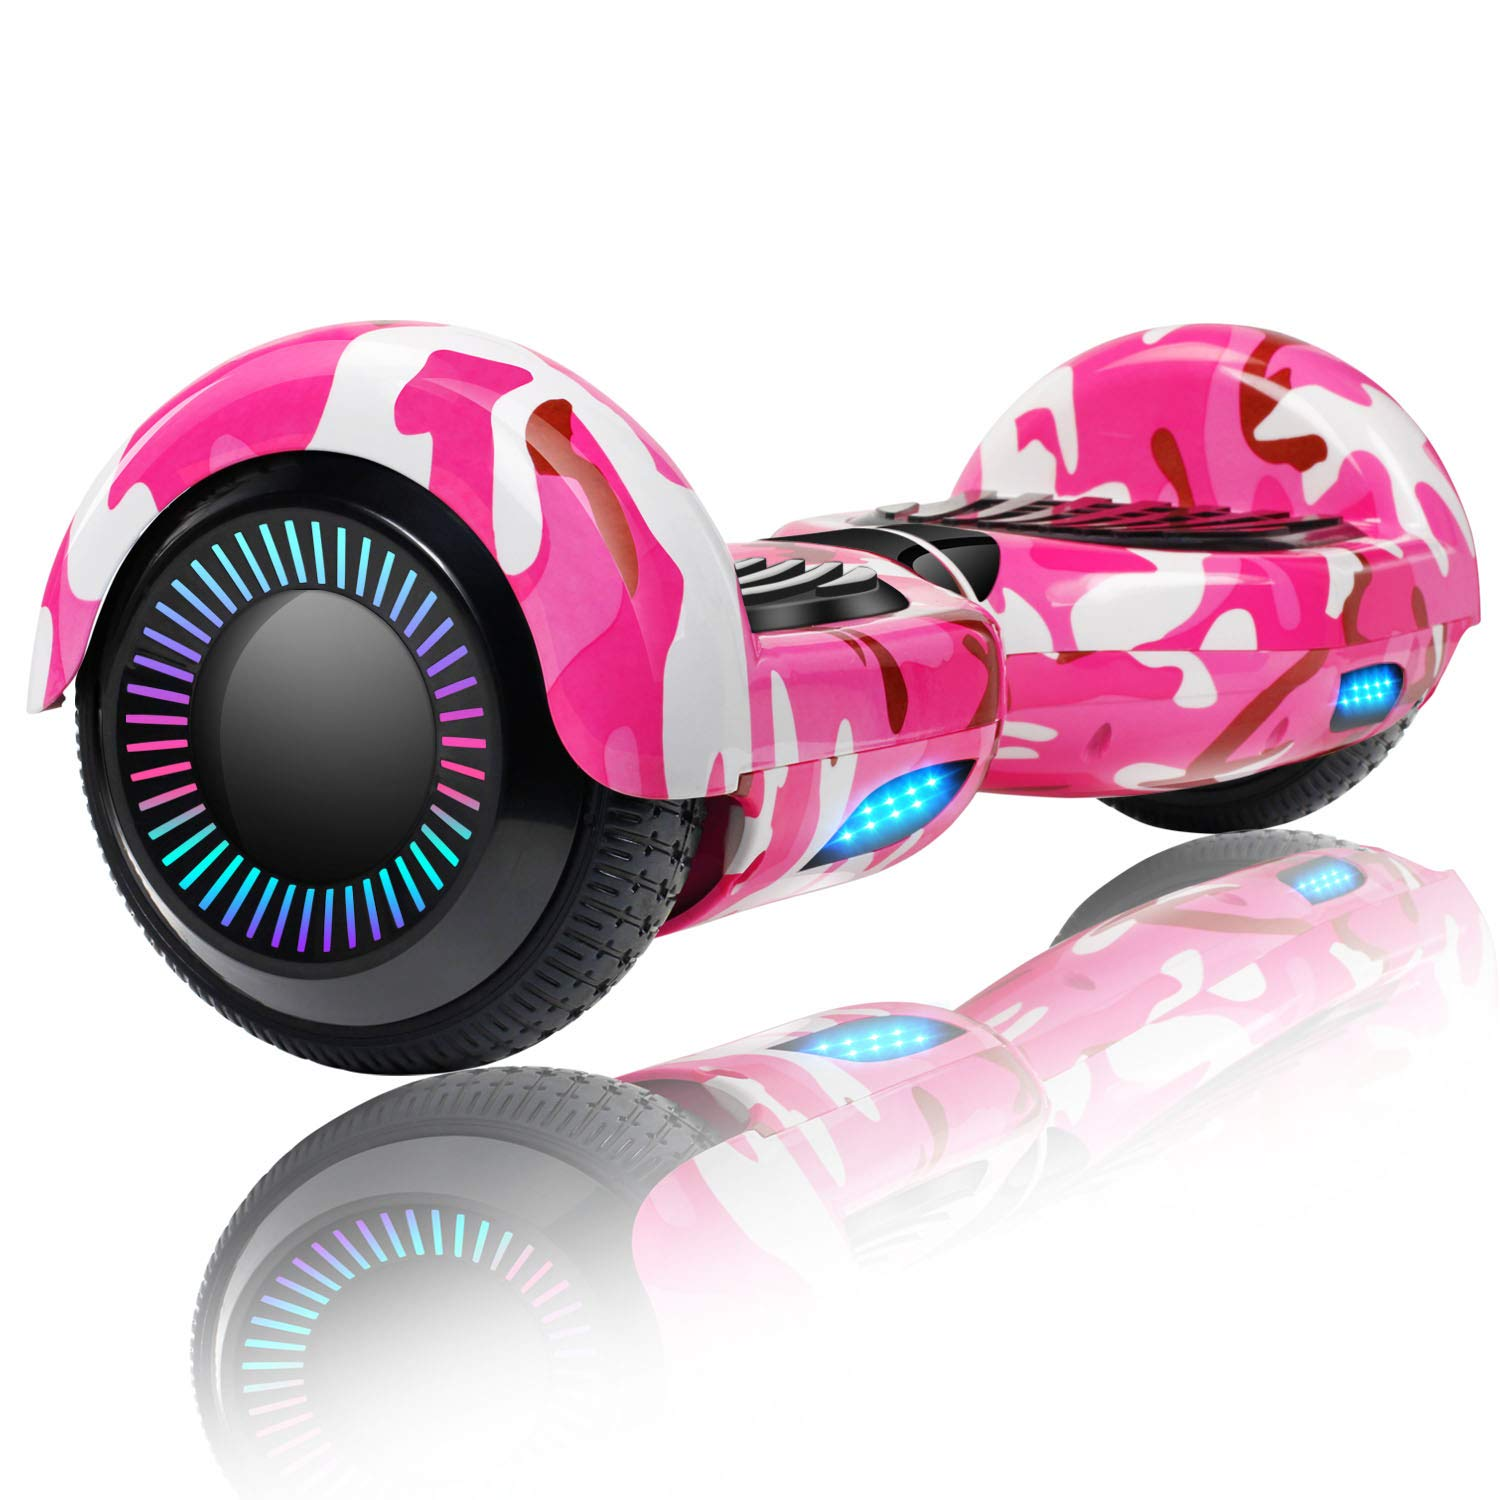 Keepower 6.5'' Hoverboard Electric Smart Self Balancing Scooter Hoverboard Built-in LED Wheels Side Lights- UL2272 Certified